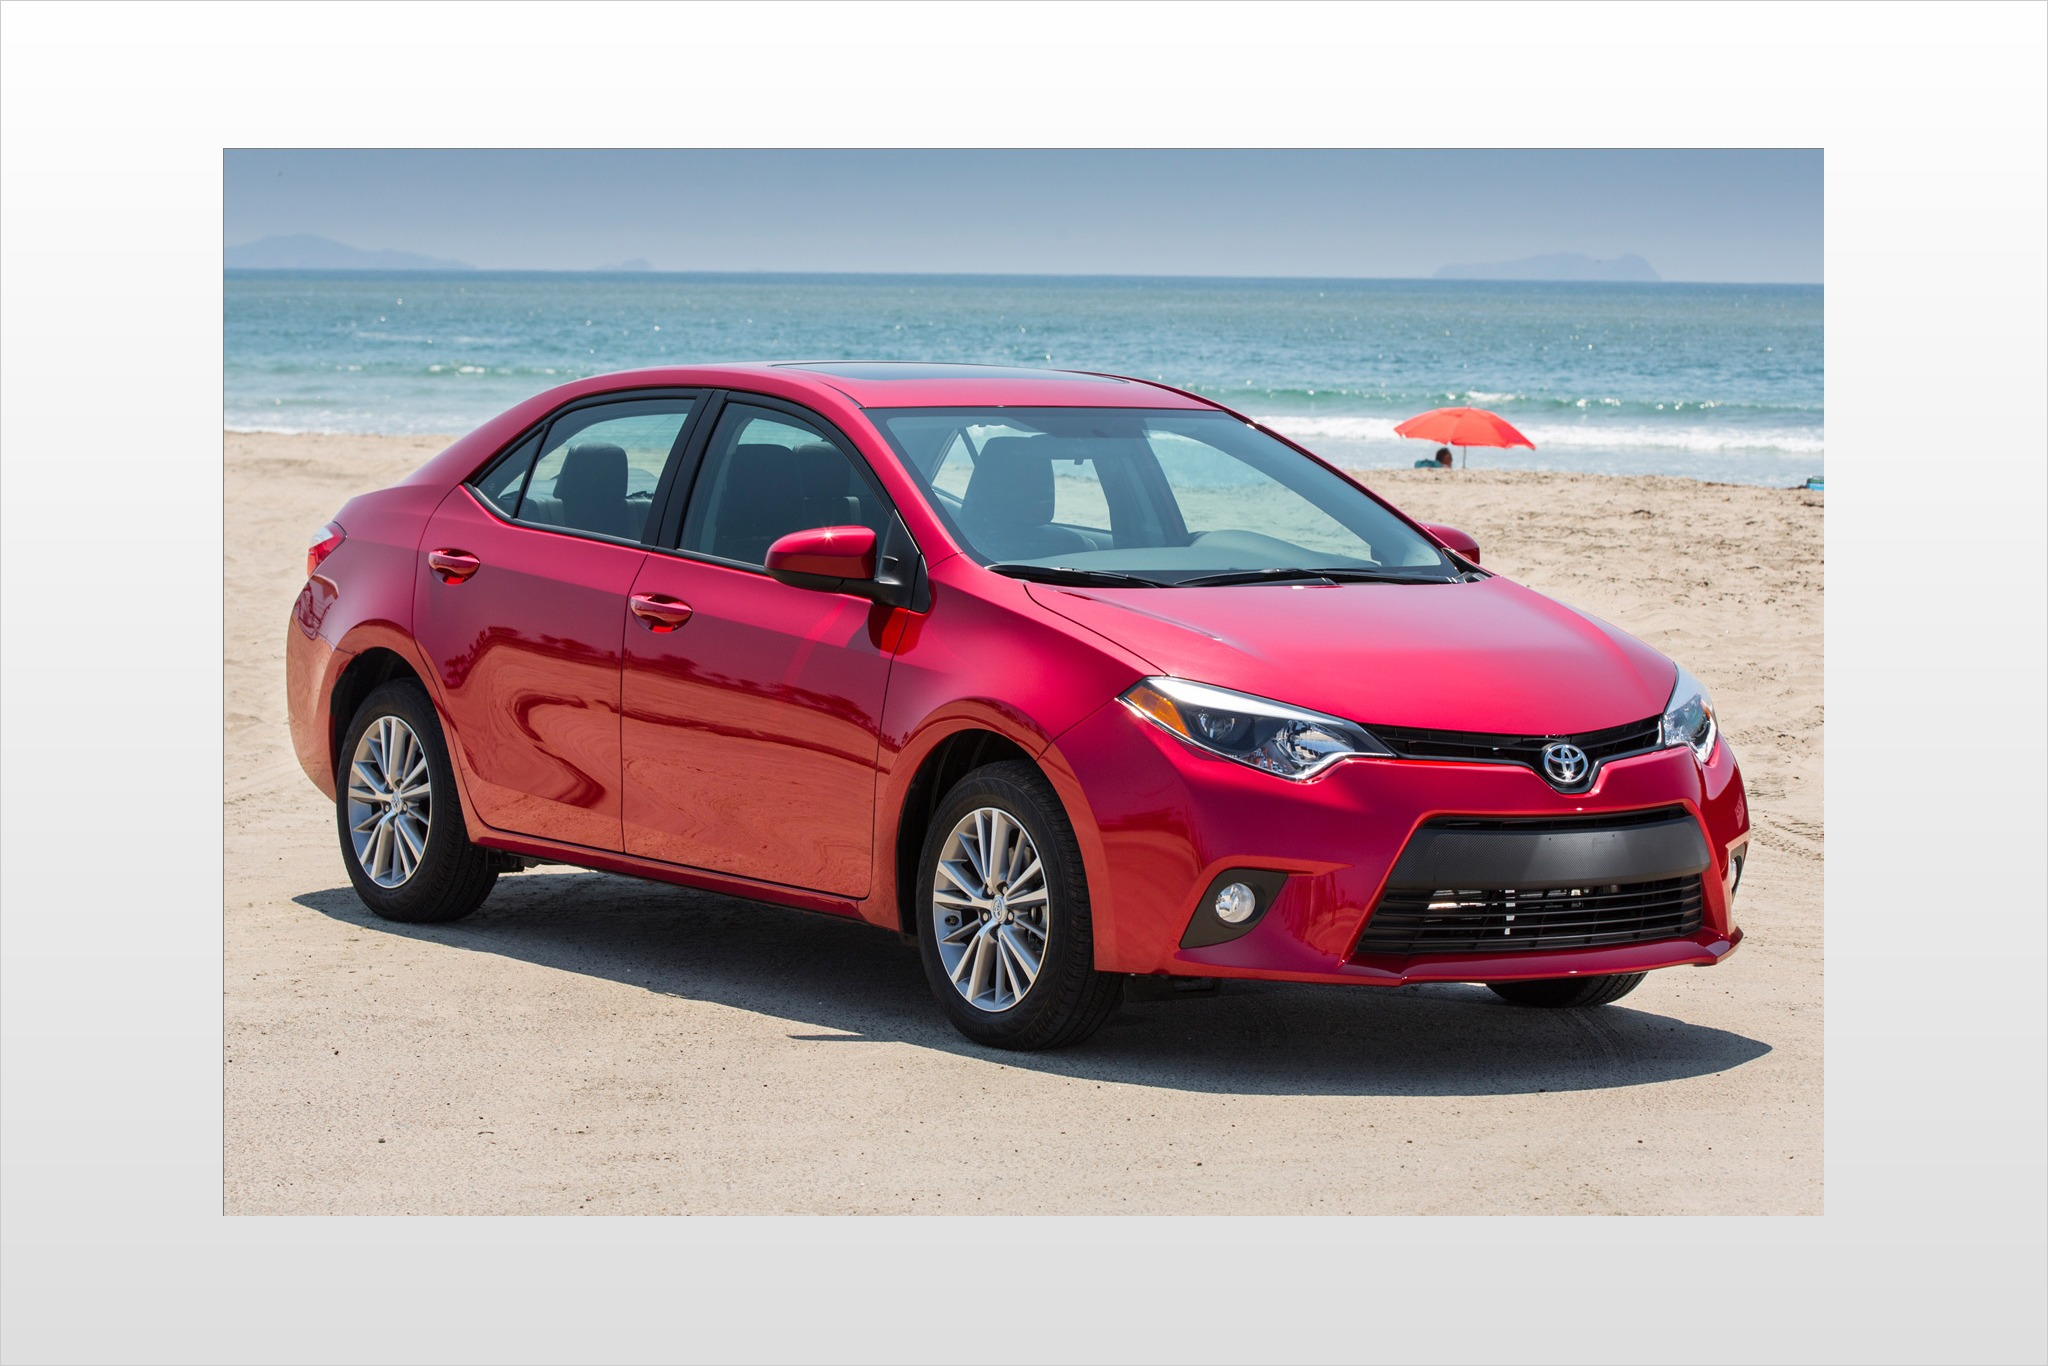 2014 toyota corolla information and photos zomb drive